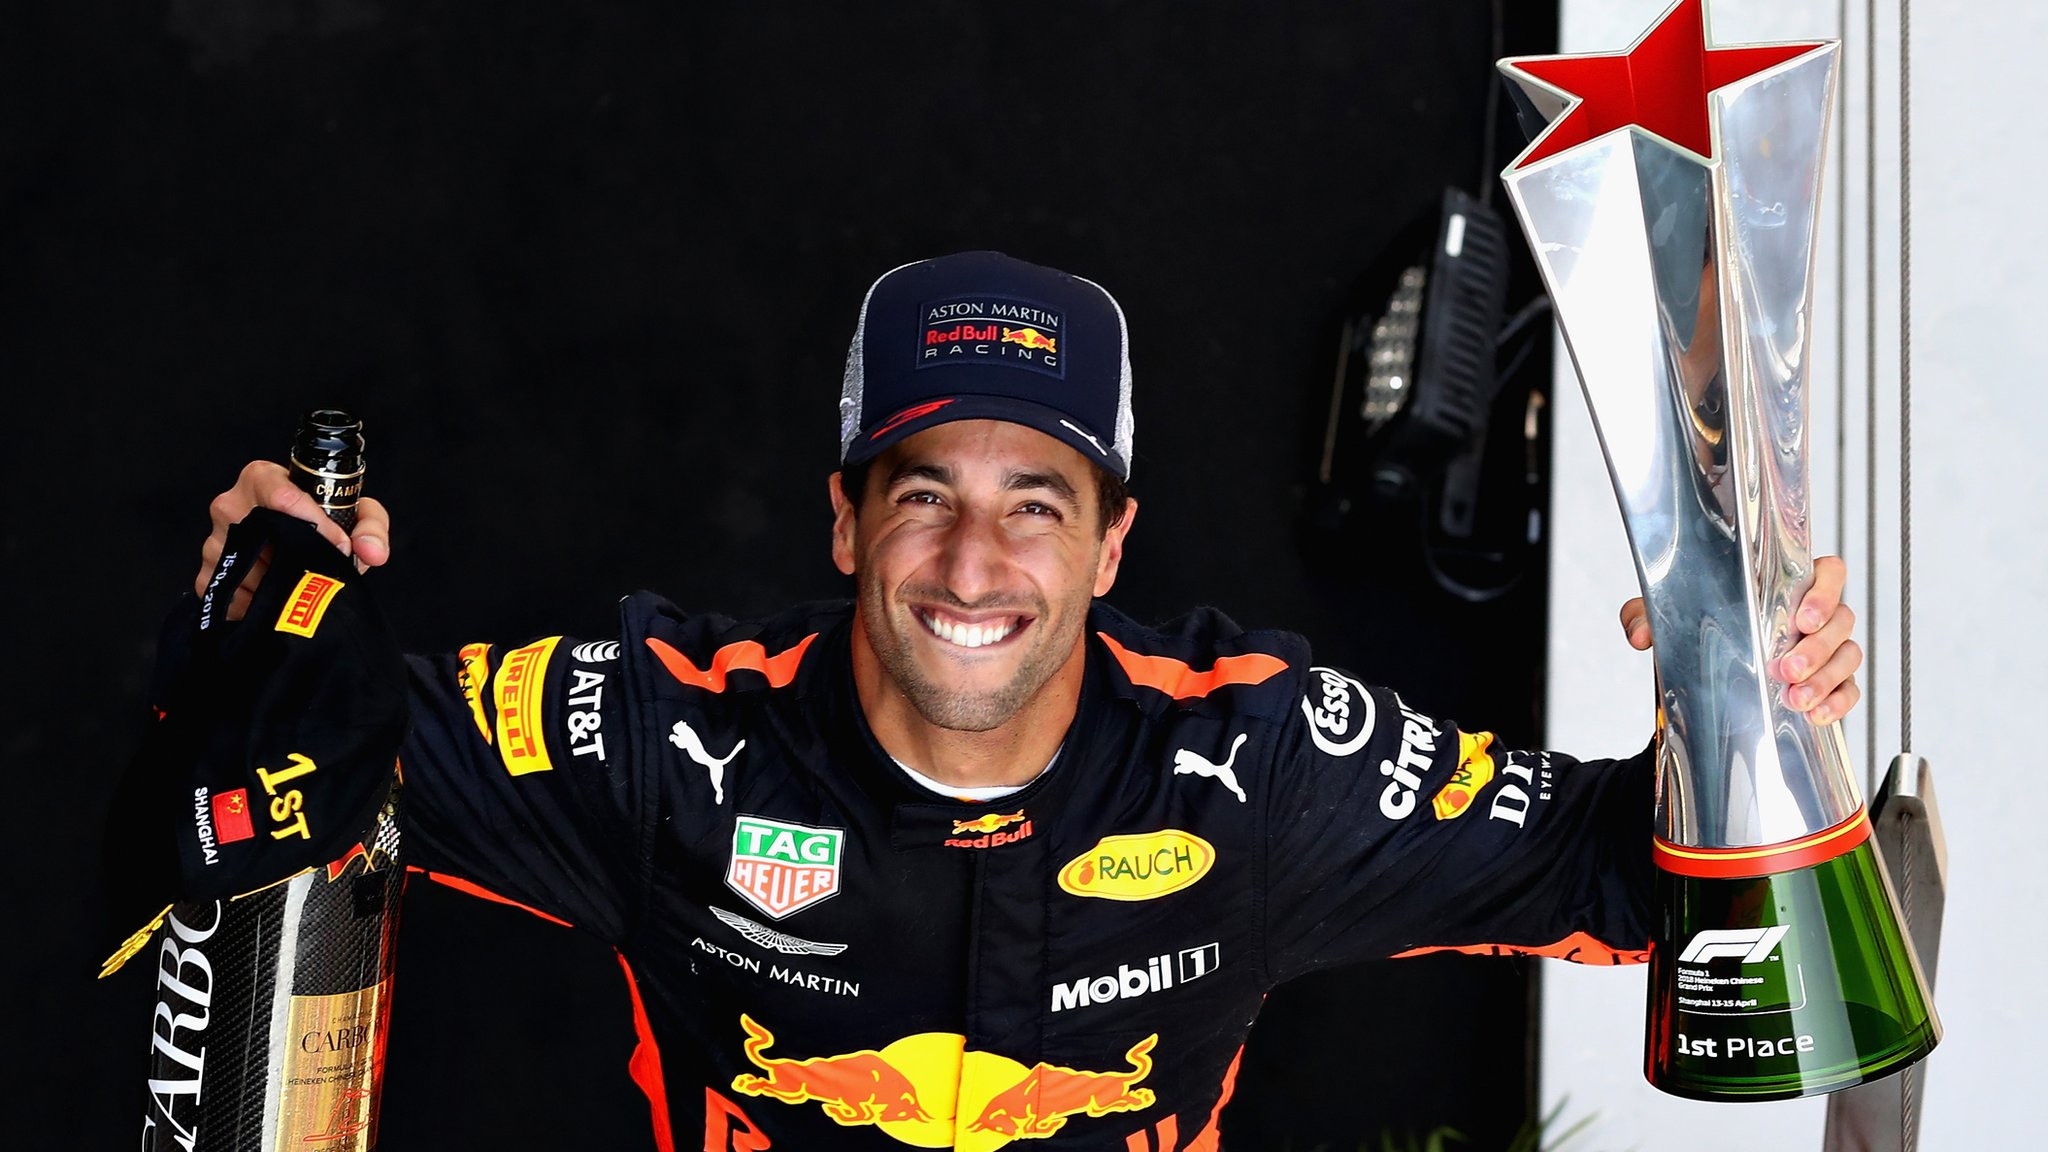 Ricciardo wins in China after series of overtakes